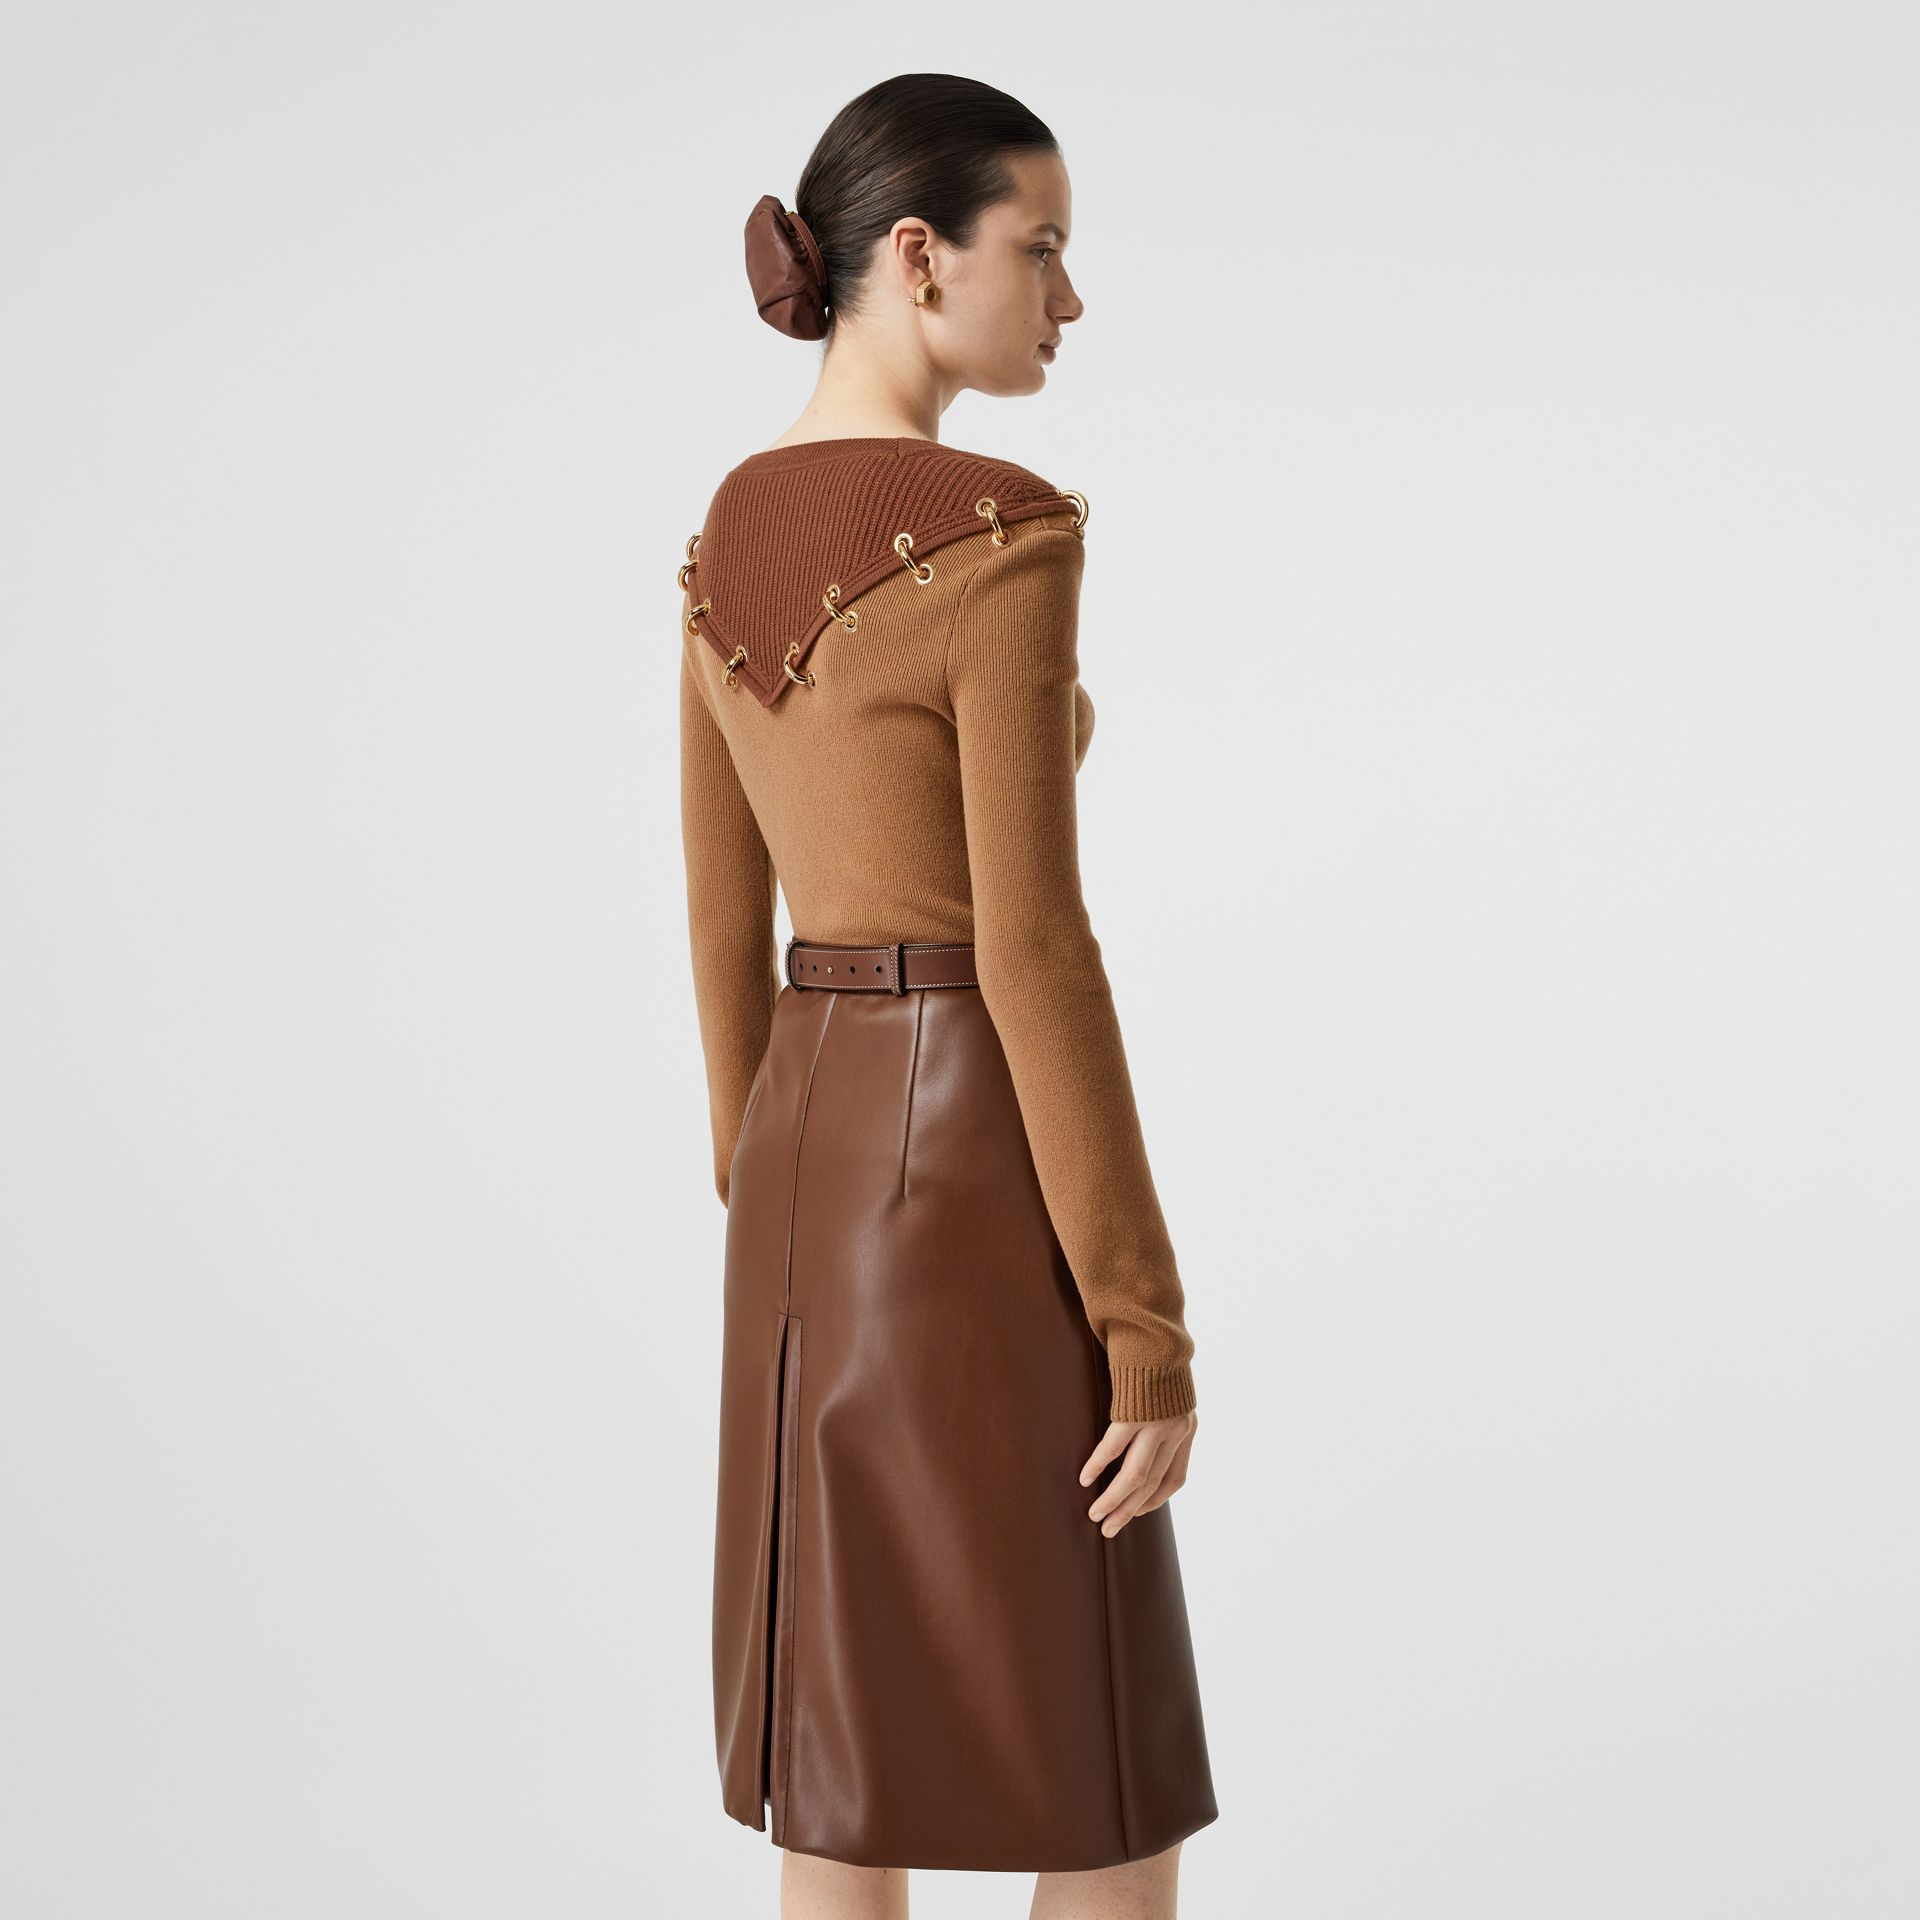 Ring-pierced Two-tone Wool Cashmere Sweater in Warm Camel - Women | Burberry United Kingdom - gallery image 2